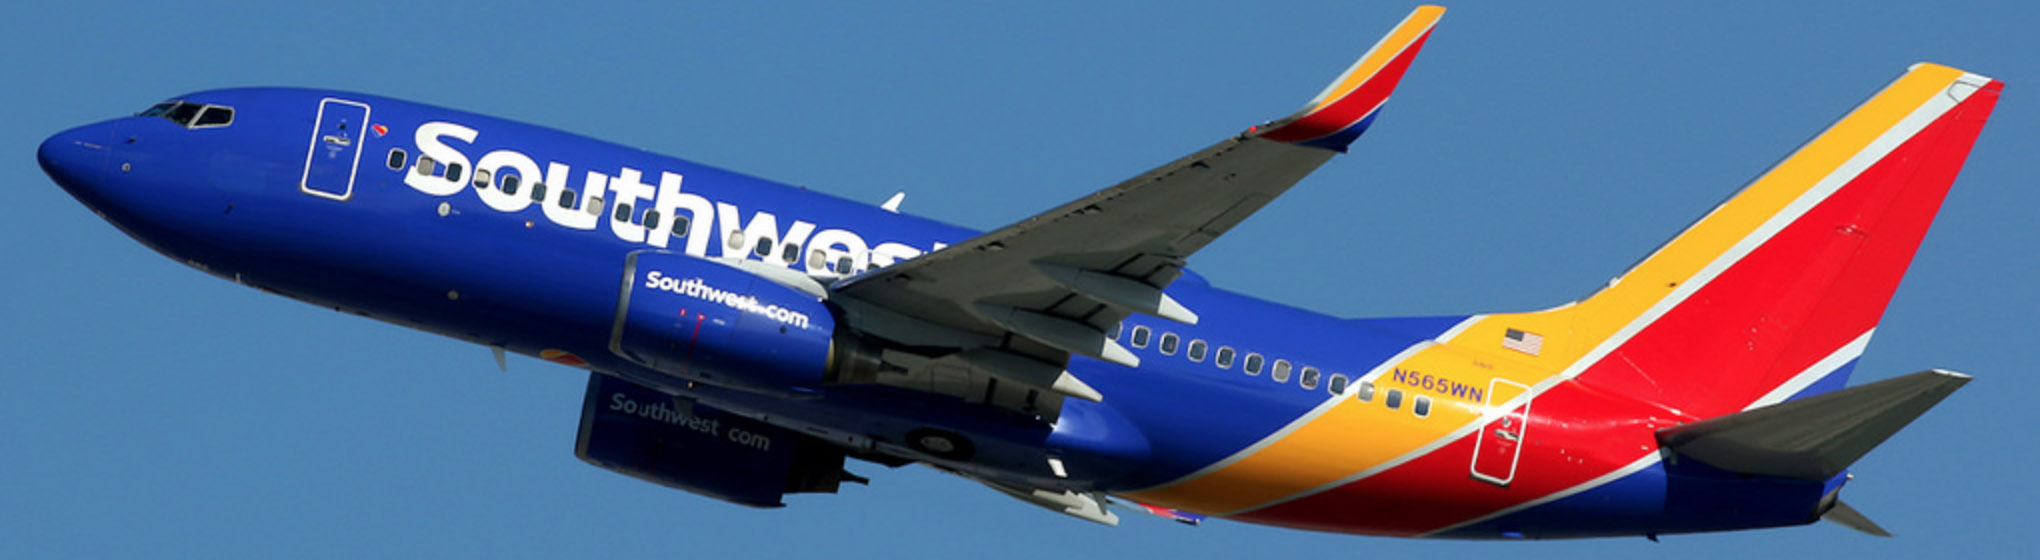 Southwest Airlines B737-700 climbing out